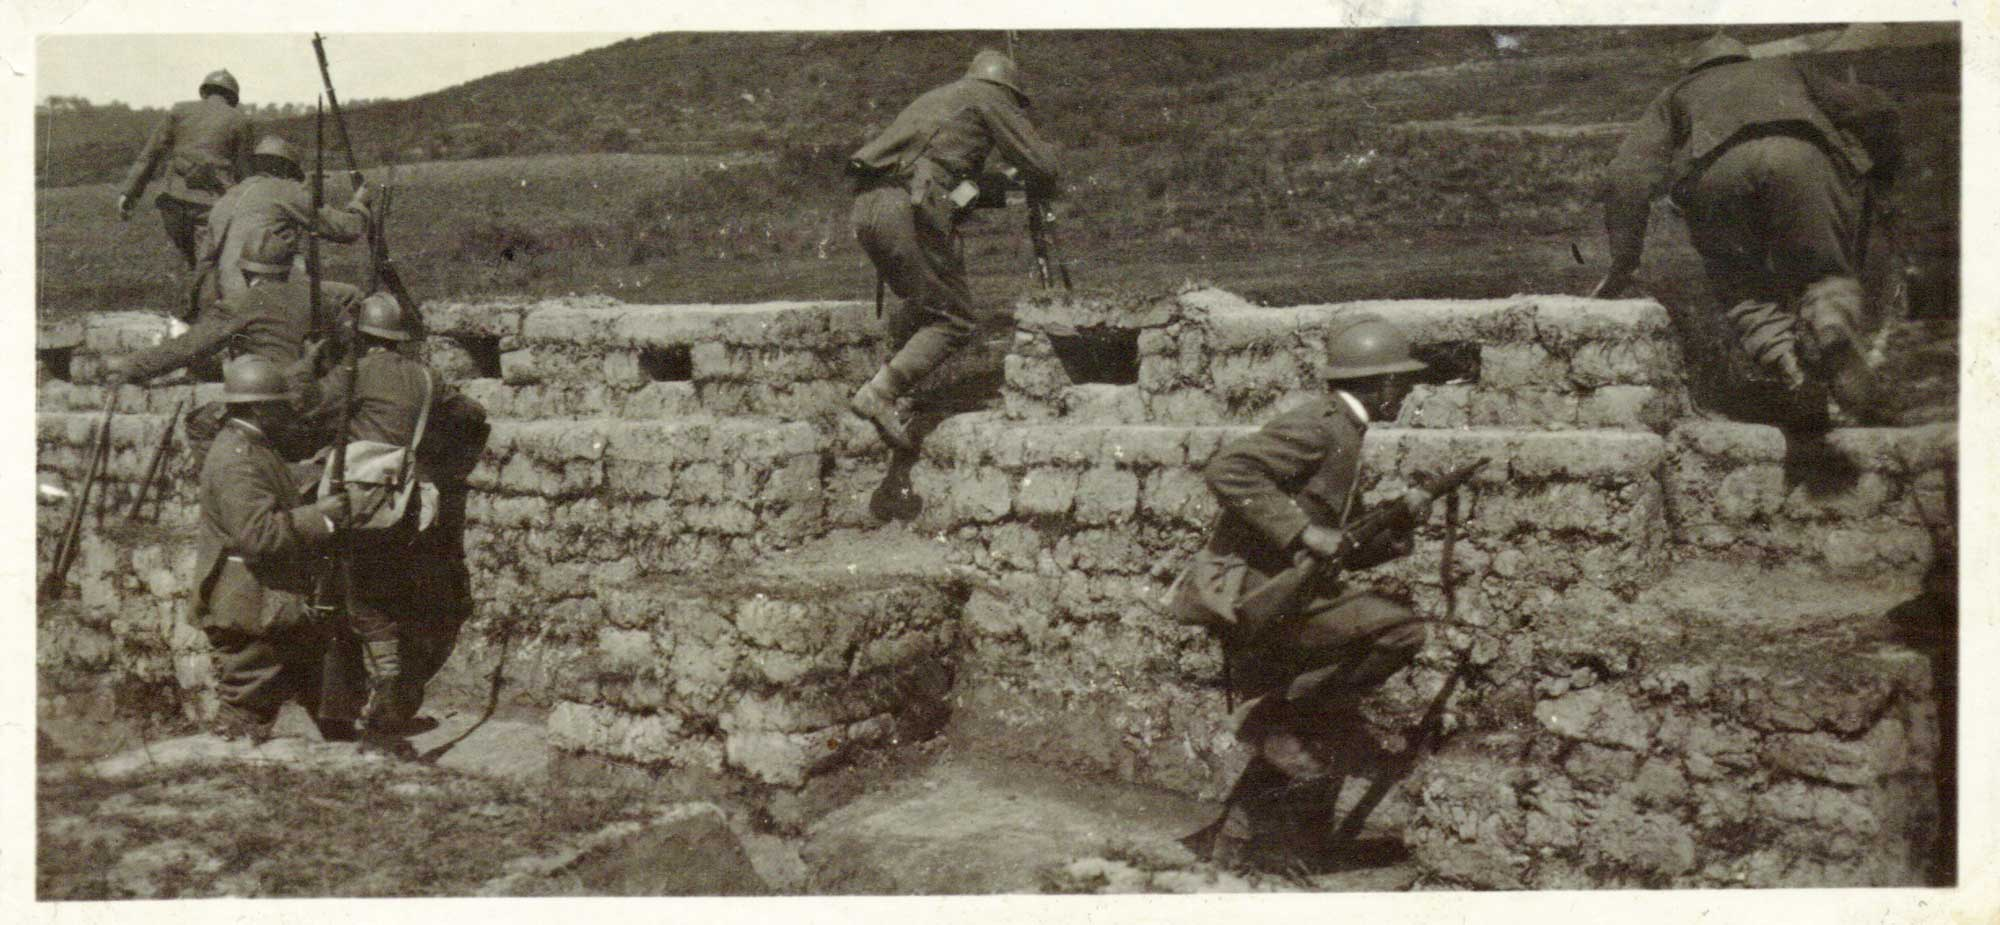 Italian soldiers leave a trench at the beginning of a 1917 assault. (British Library)